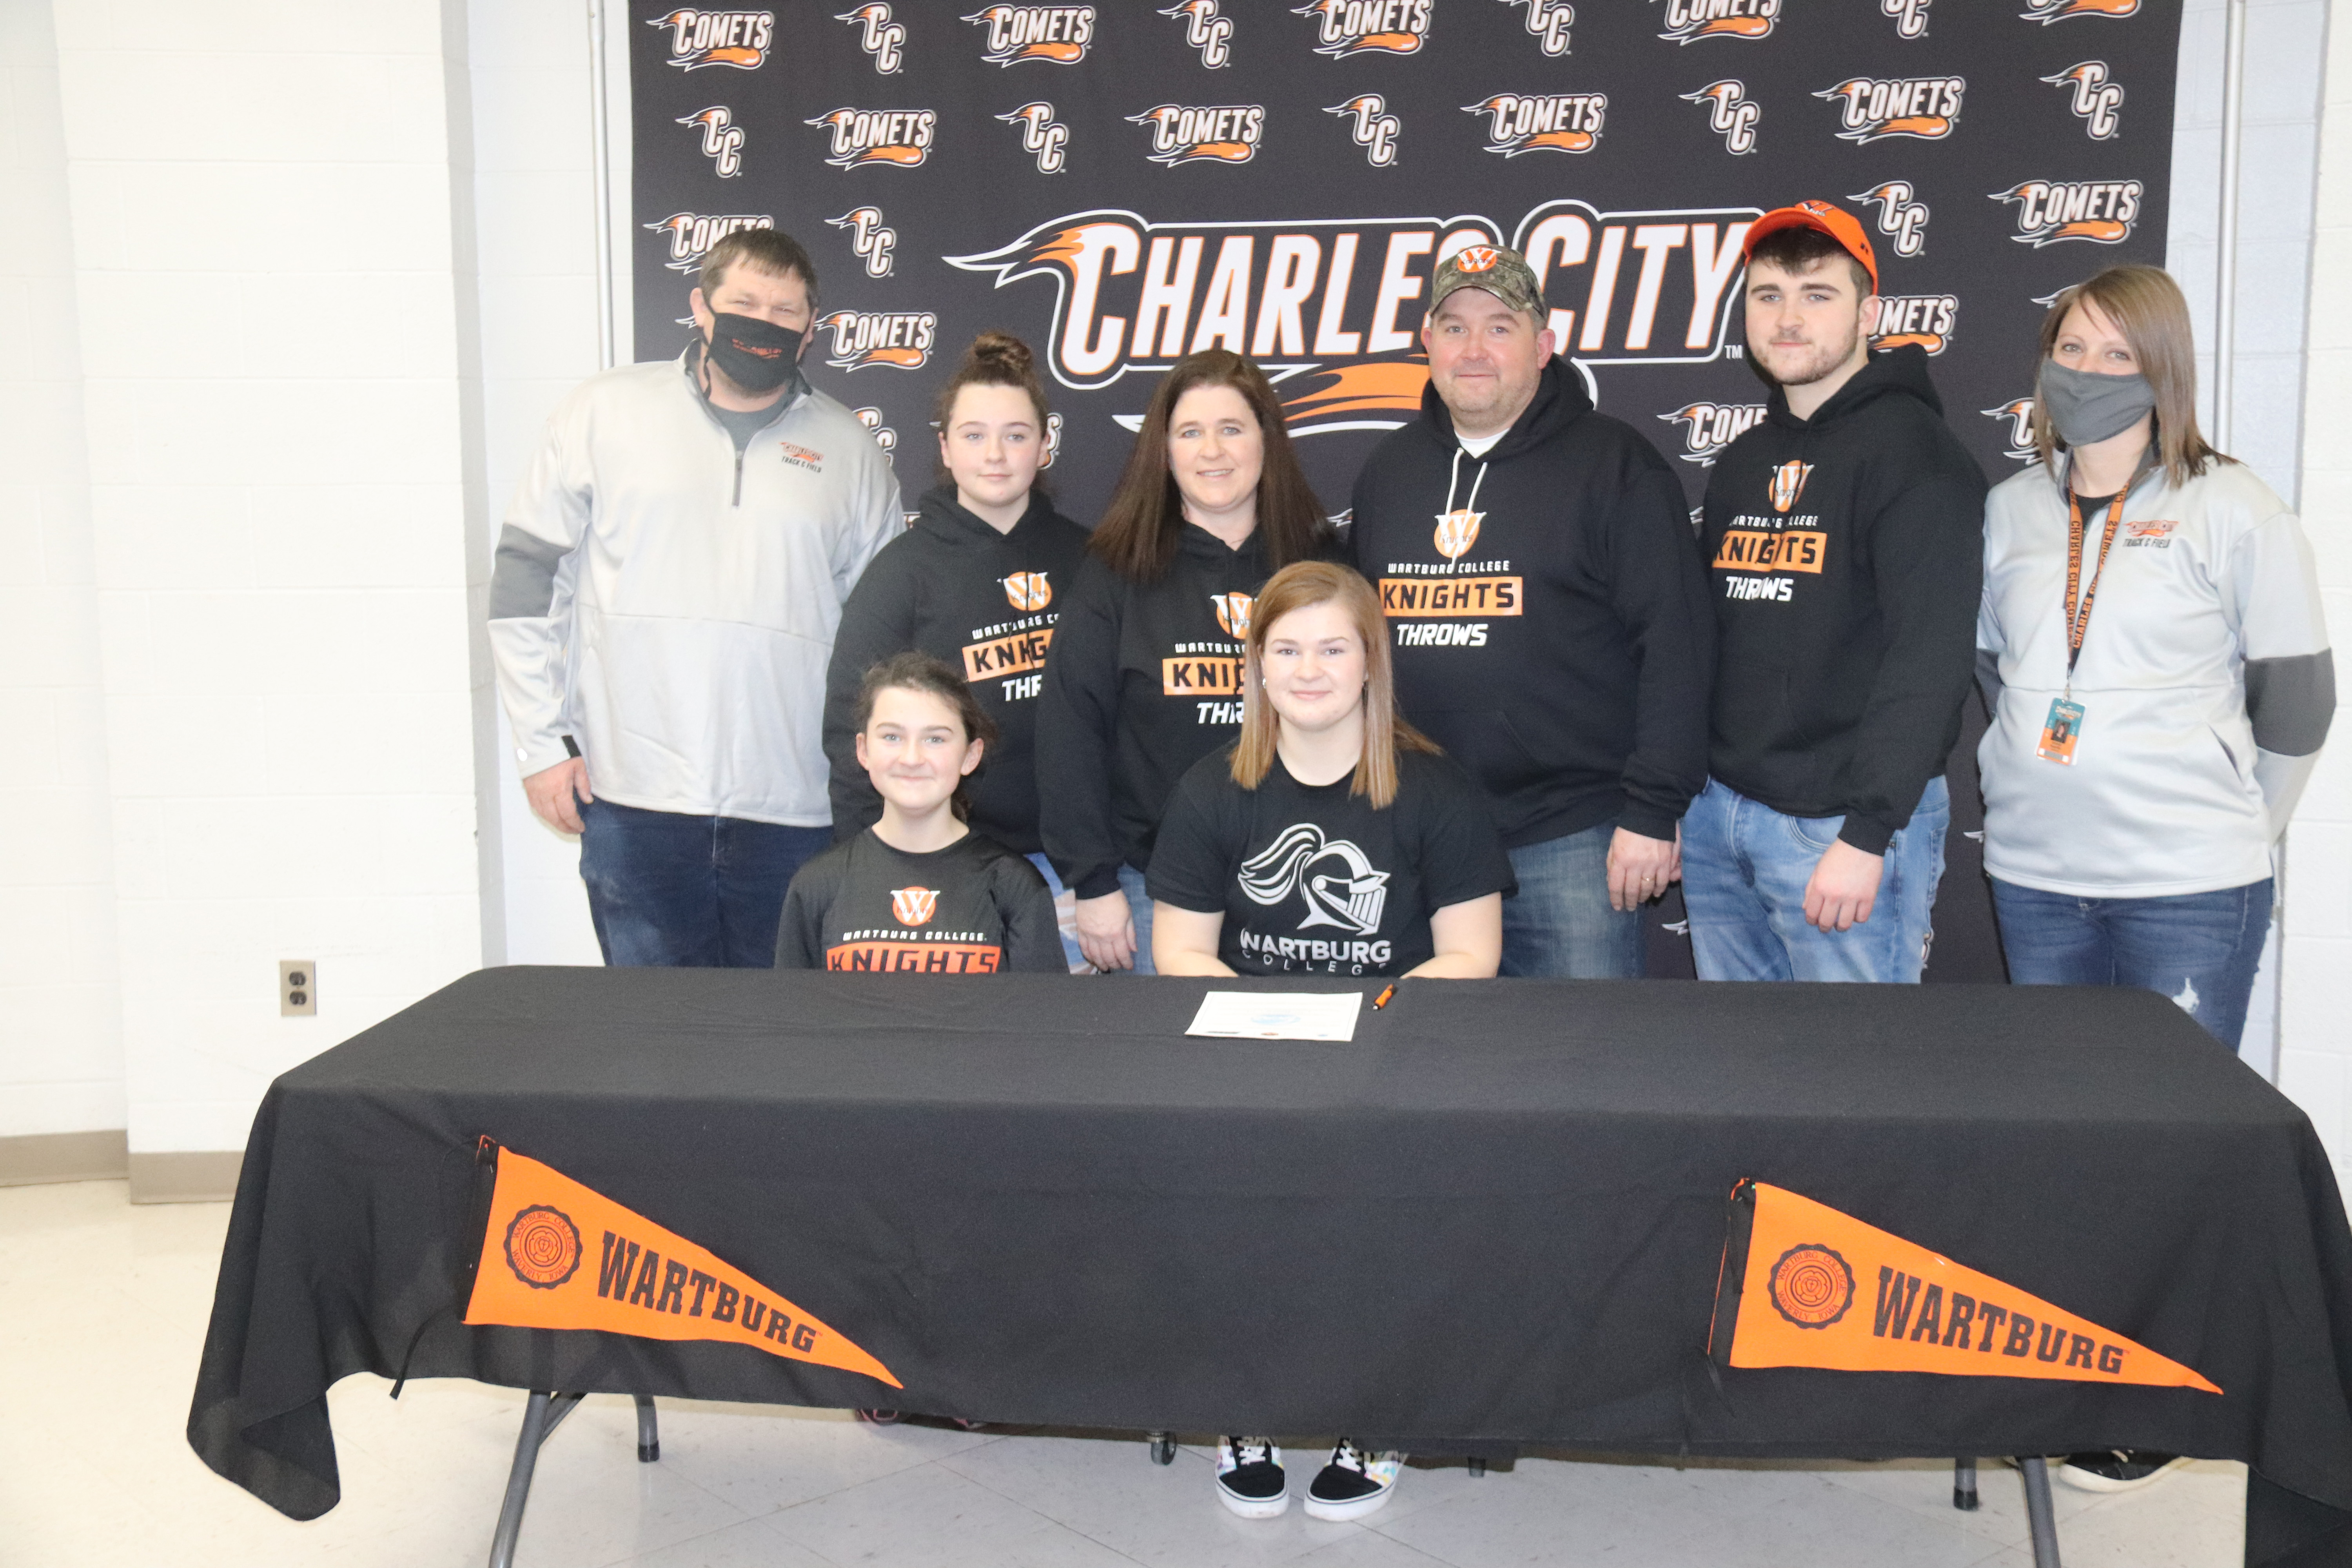 Carly Stevenson hopes to set Comet discus record before continuing at Wartburg